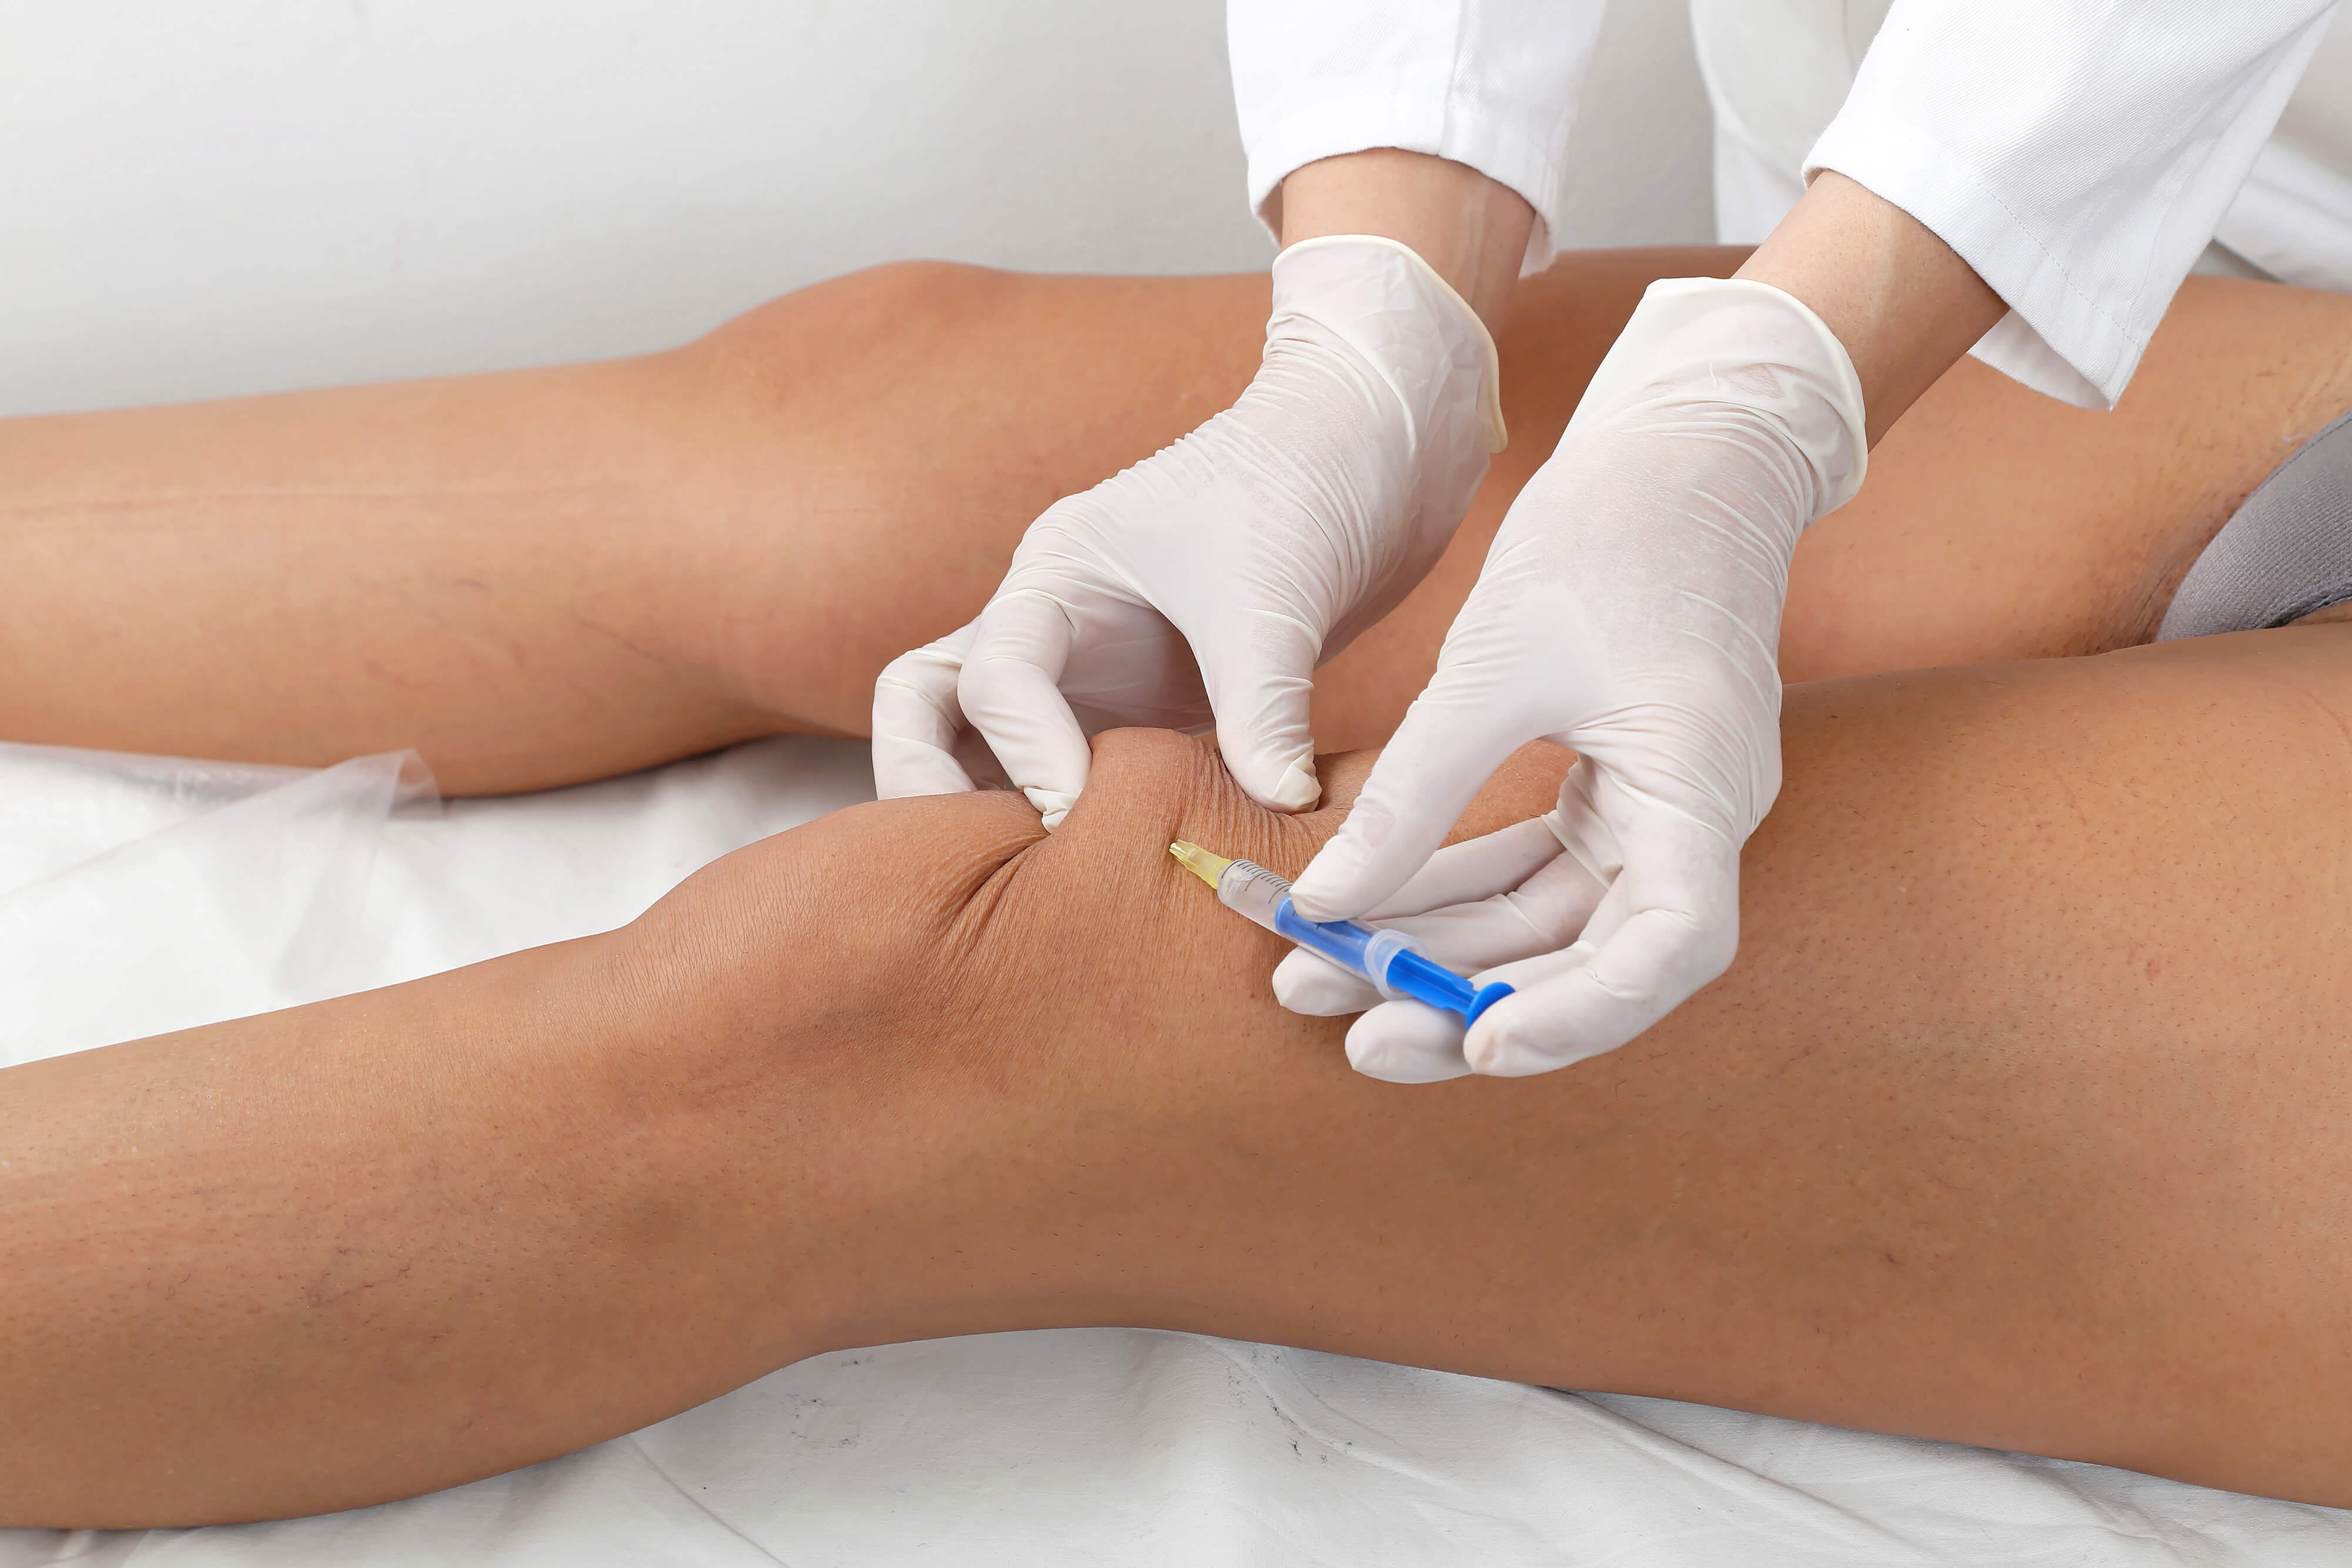 Injections for Knee Pain in Austin